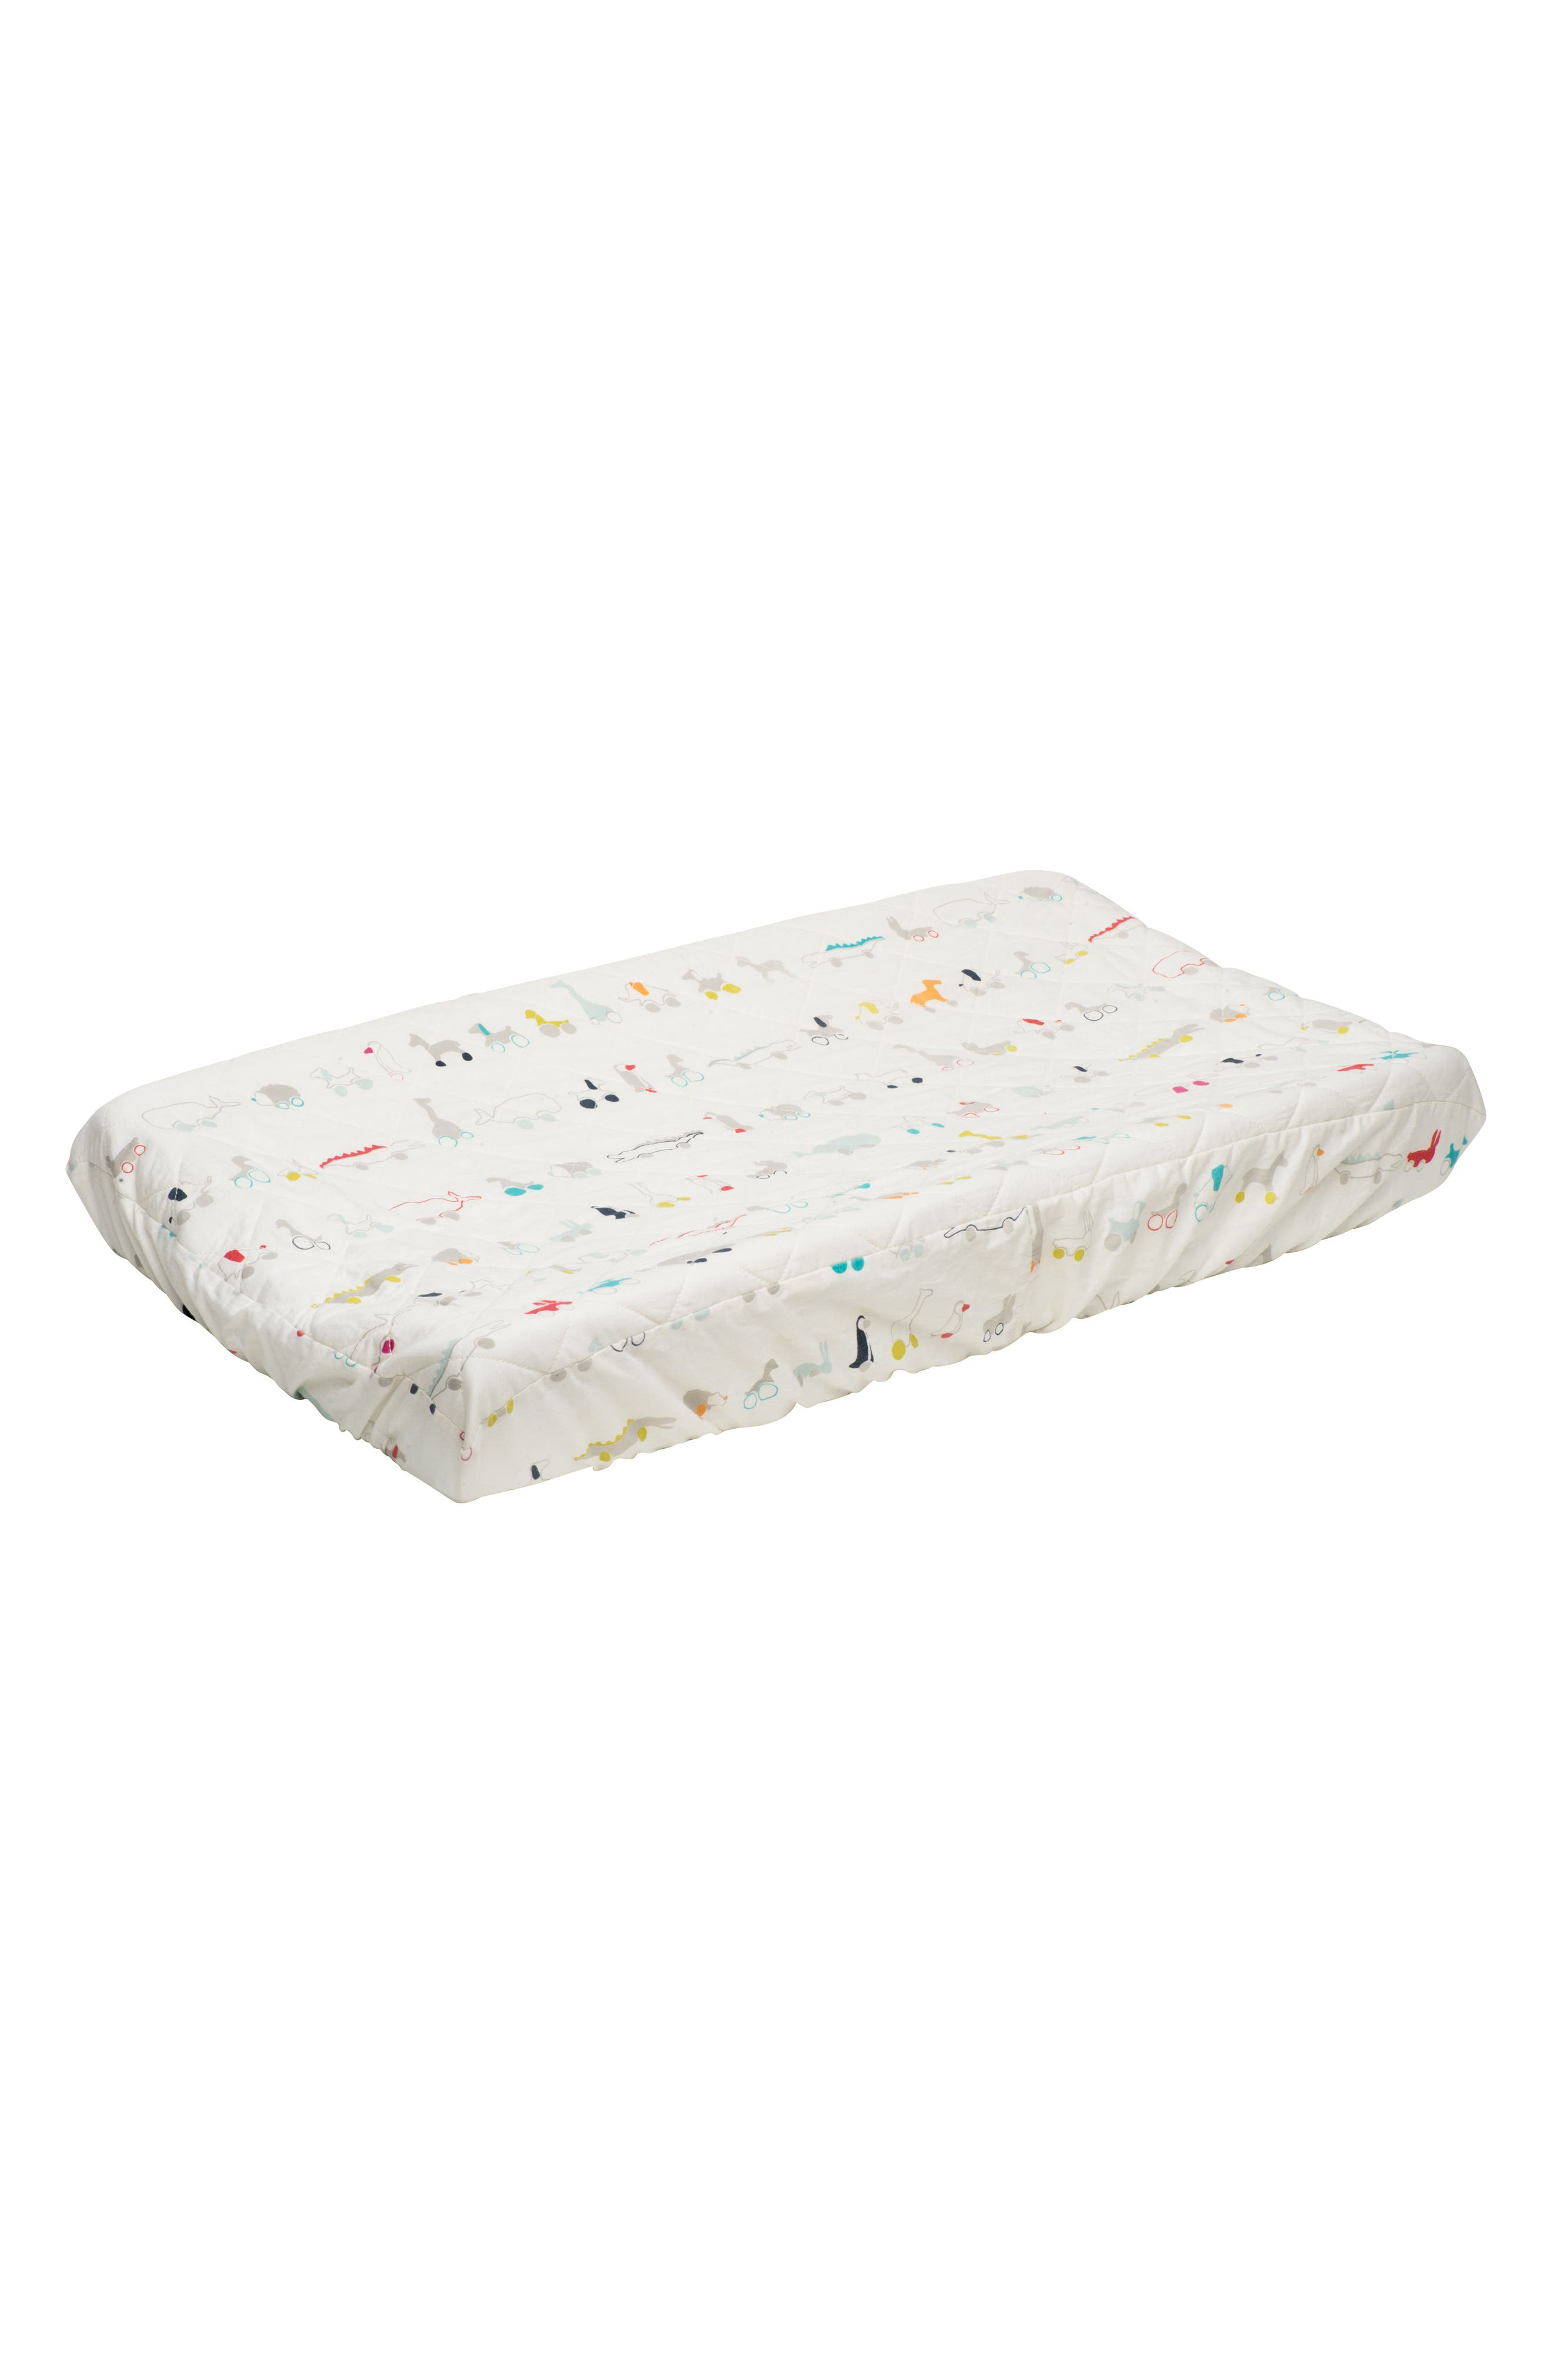 Pull Toys Changing Pad Cover,                             Main thumbnail 1, color,                             MULTI